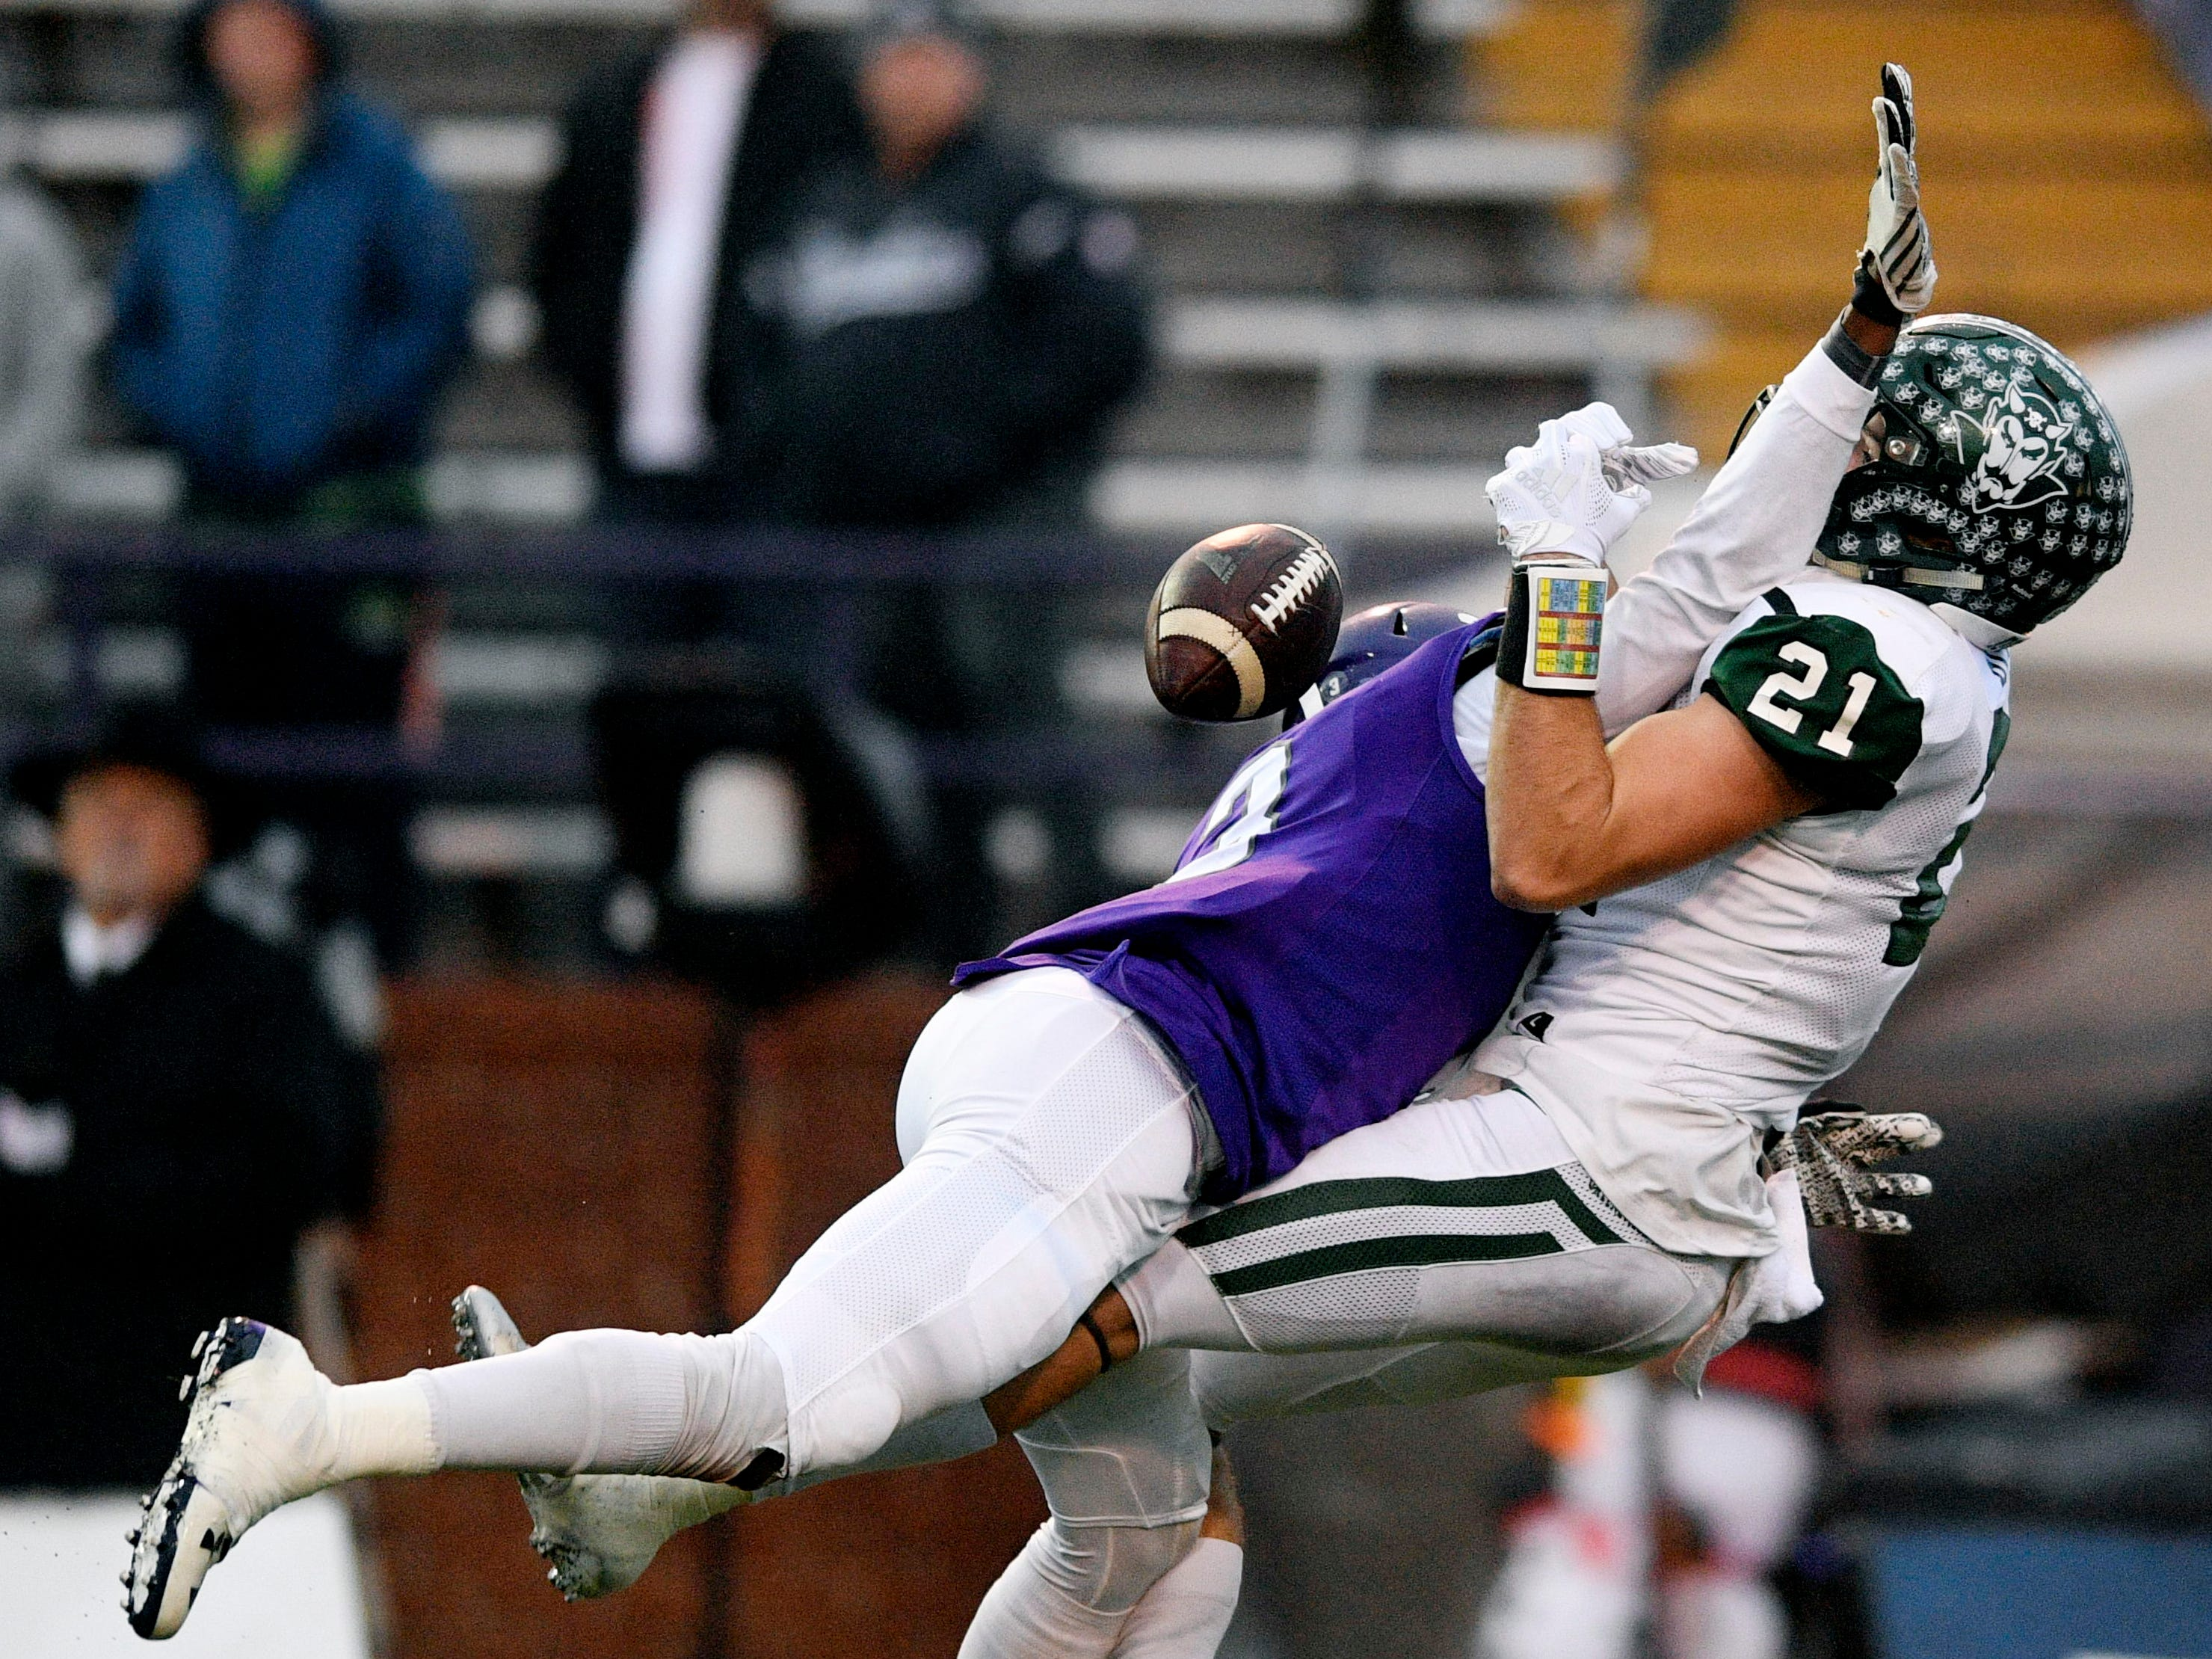 Haywood's  Marquis Pugh (3) breaks up a pass intended for Greeneville's Cameron Hite (21) in the first half during the Class 4A BlueCross Bowl state championship at Tennessee Tech's Tucker Stadium in Cookeville, Tenn., on Thursday, Nov. 29, 2018.